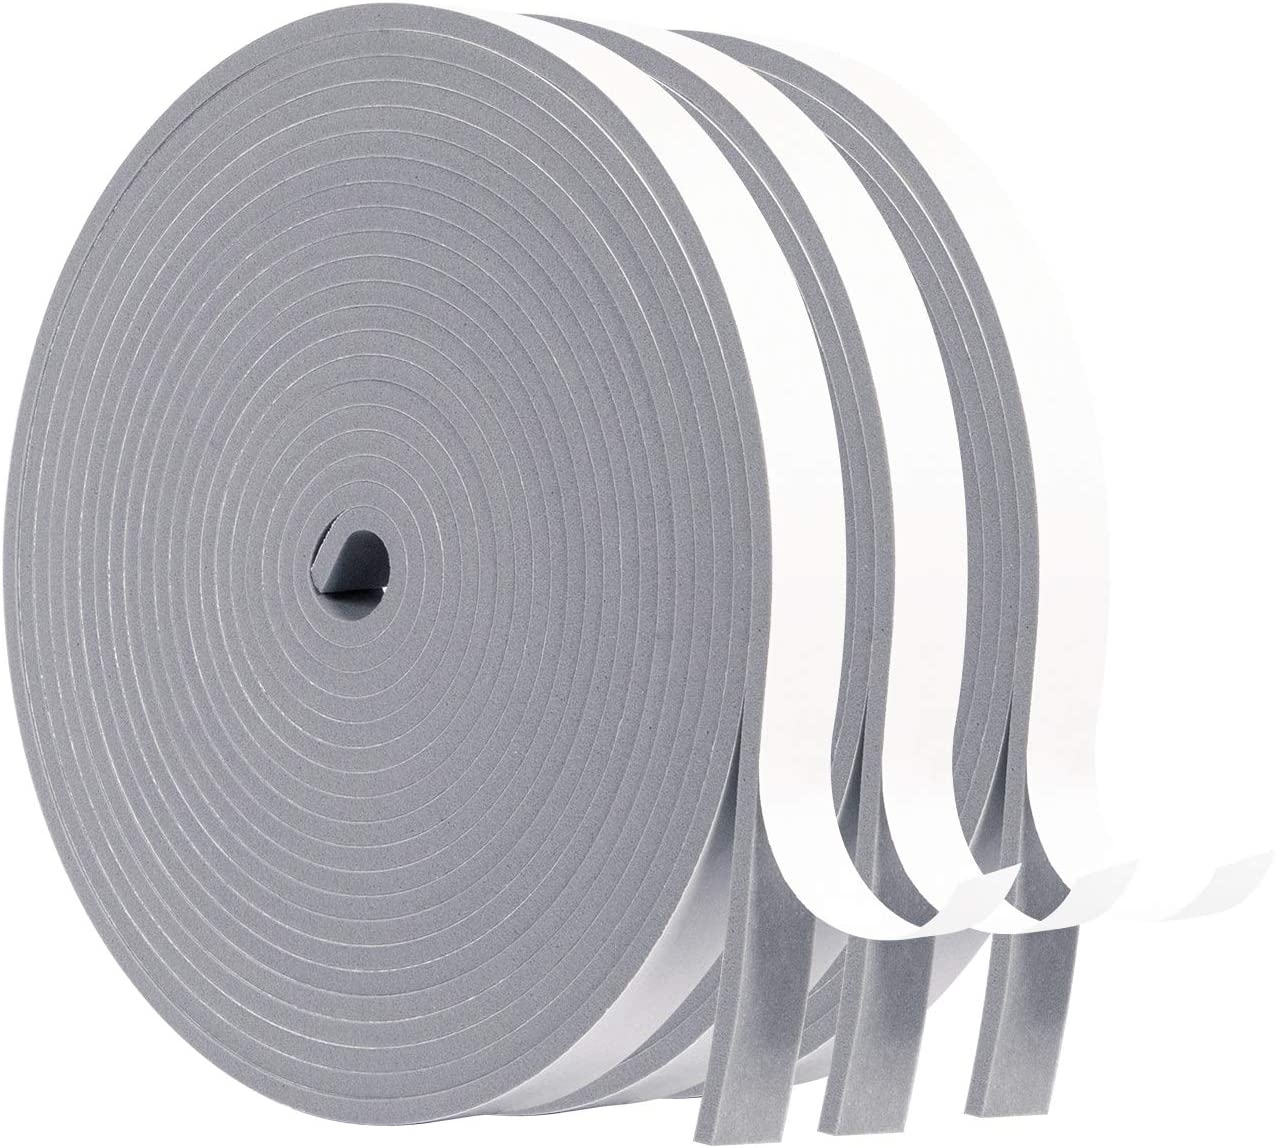 MAGZO Foam Tape Outlet Max 81% OFF sale feature 1 2x1 8 Window Seal Stripping Ins Weather Inches